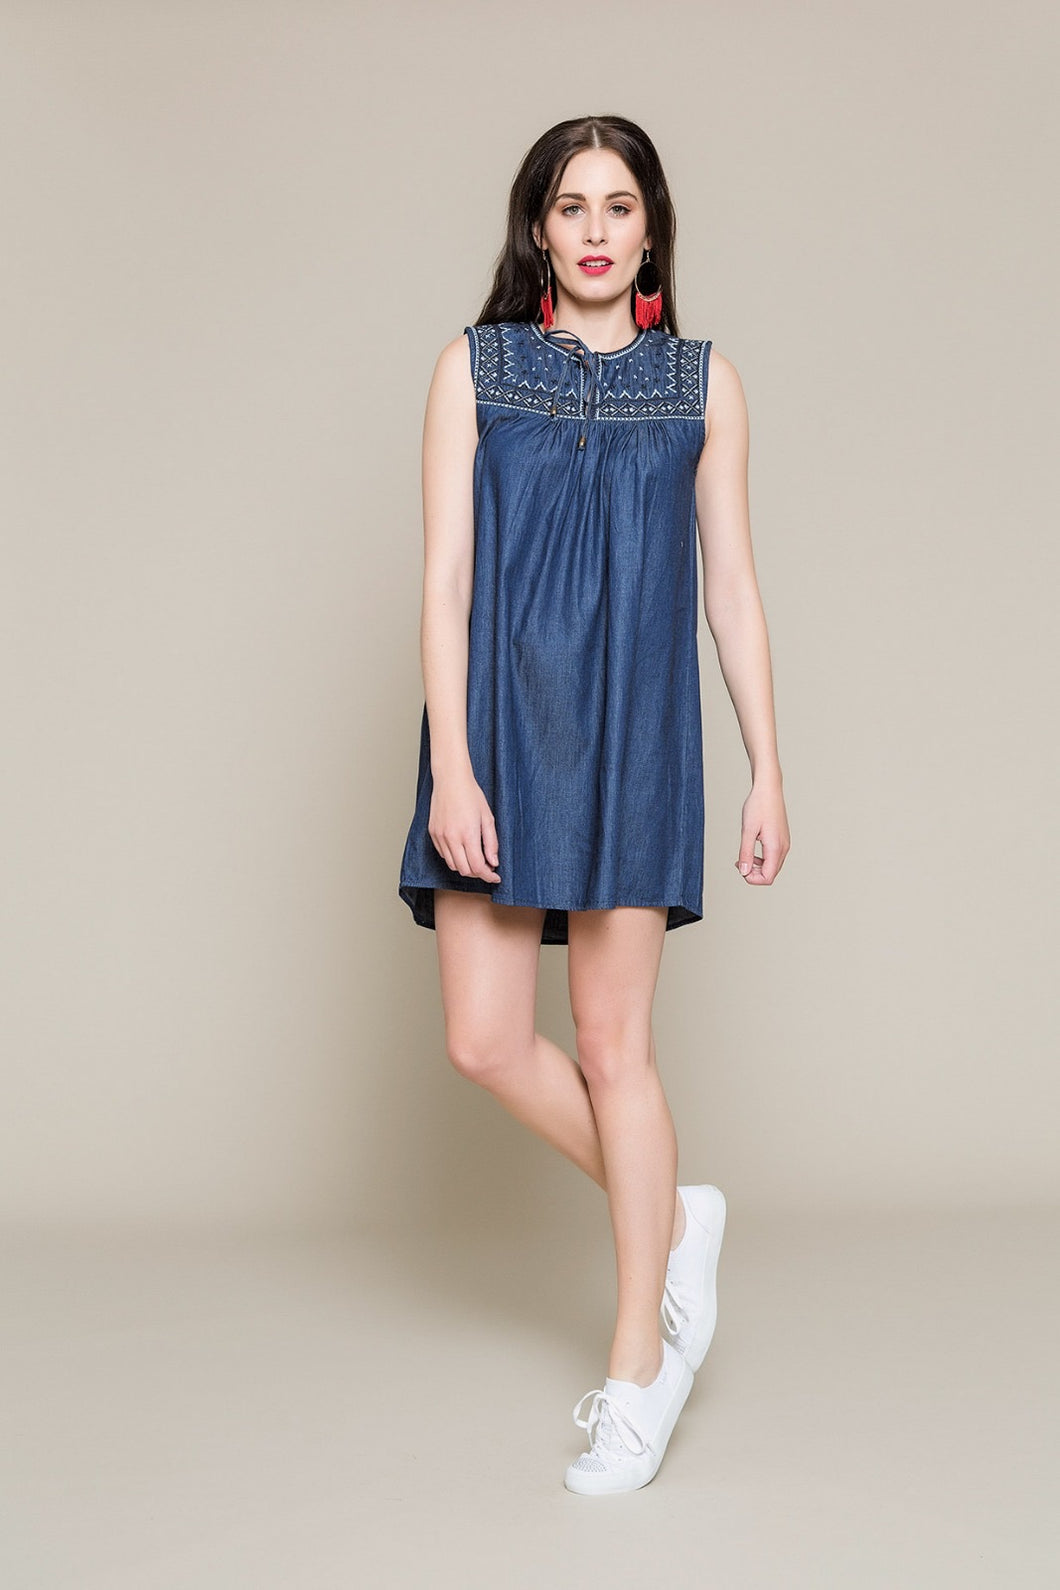 Crave mini denim dress - dark blue denim